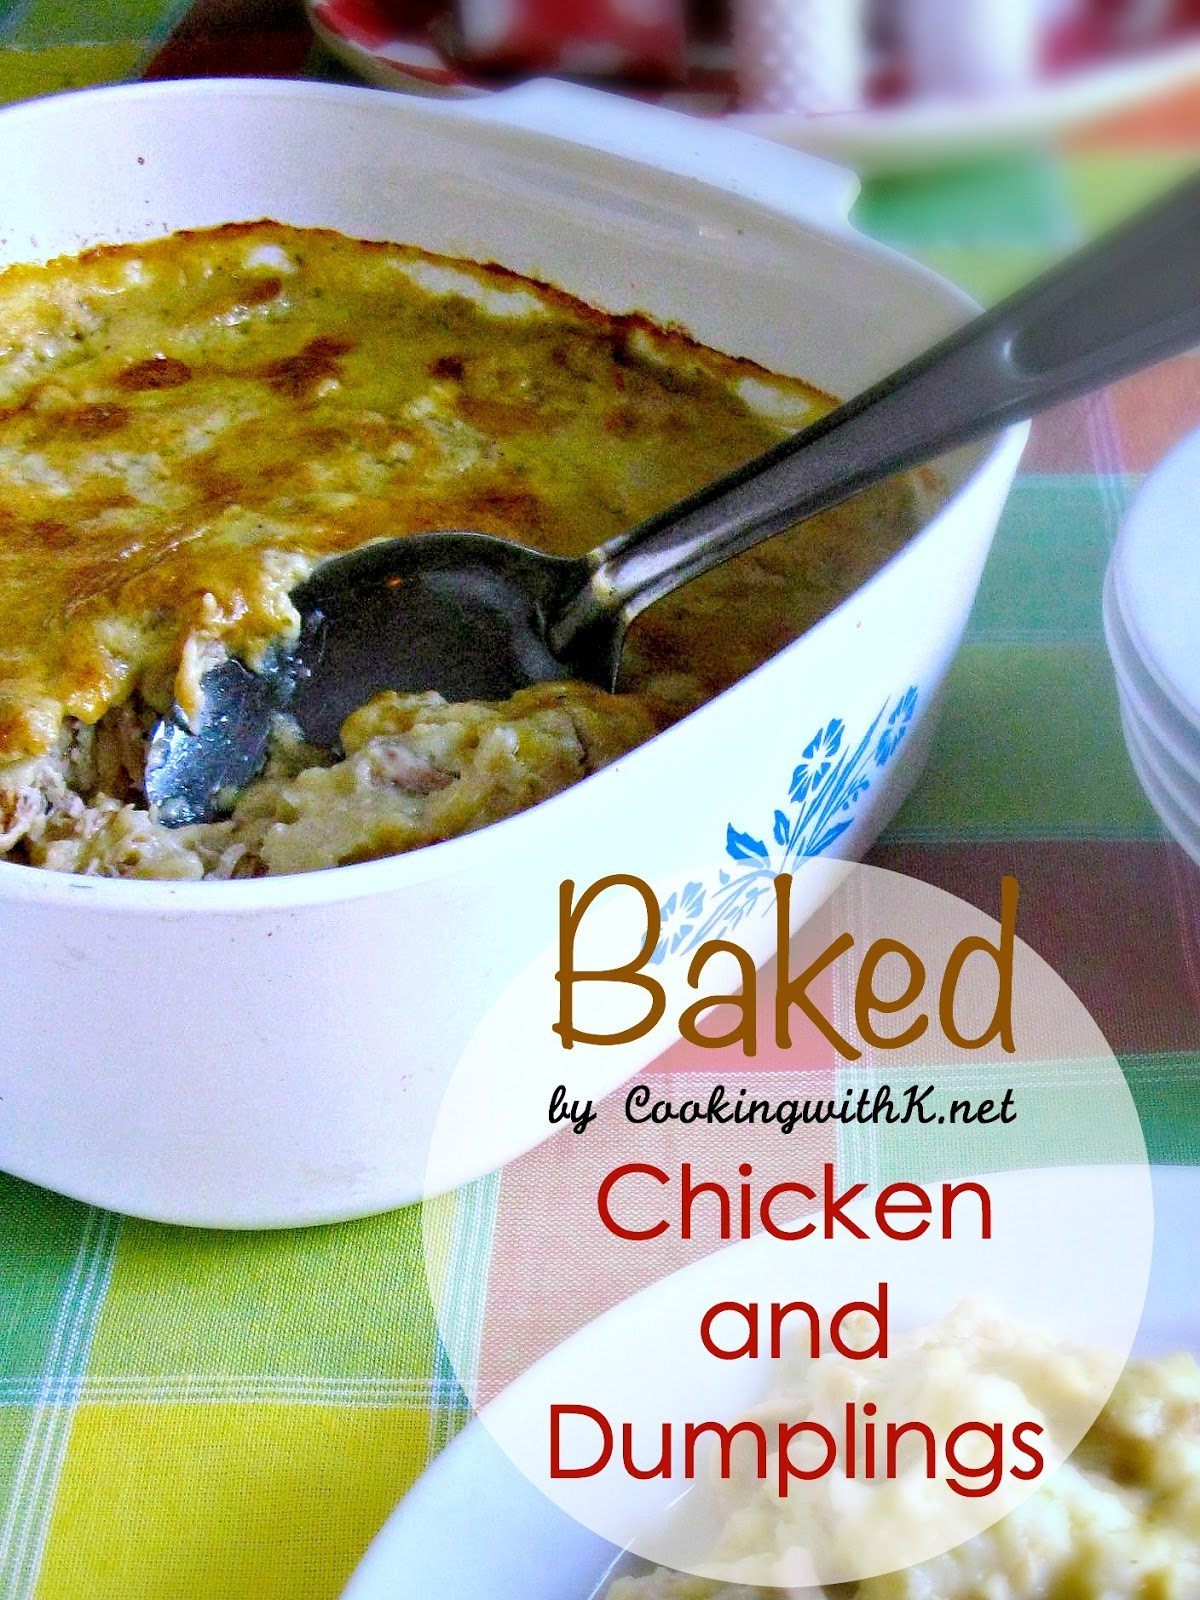 COOKING WITH K BAKED CHICKEN AND DUMPLINGS